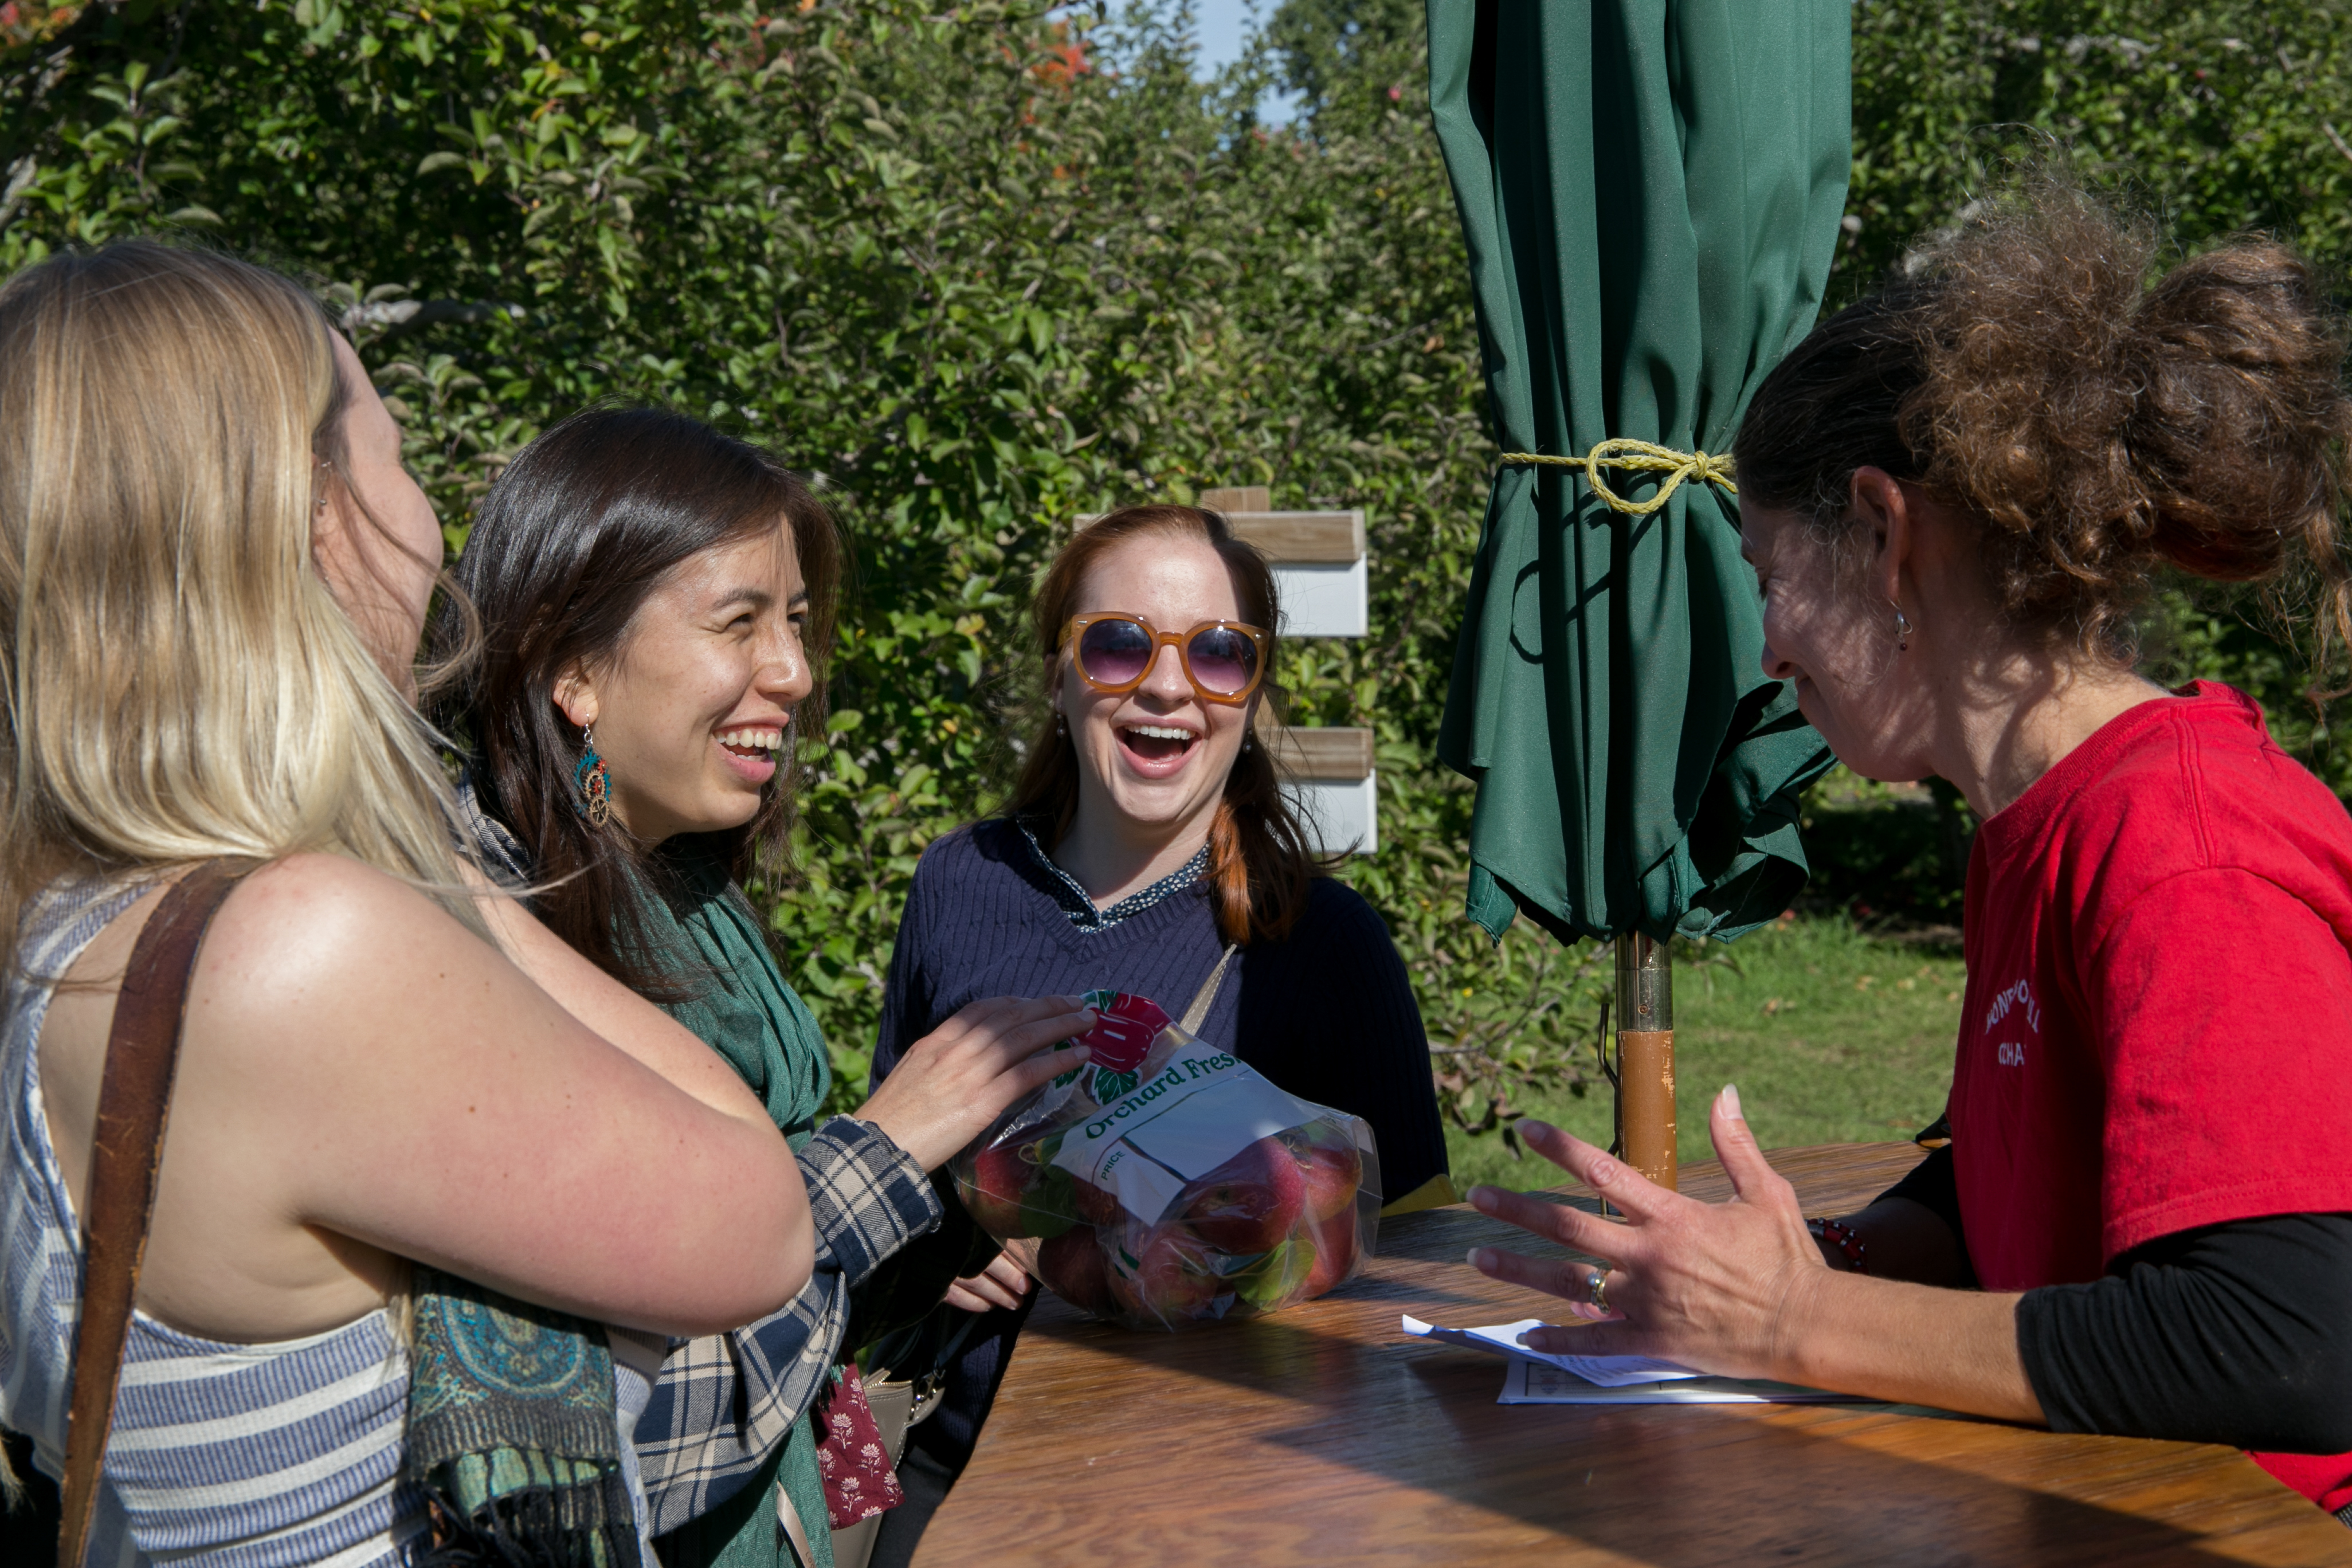 (From left) Grace Wingler, 21, Anais Azul, 21, and Ellen Leightcap 21, speak with Karen Axelrod, who works at Honey Pot Hill Orchards. Photo by Silvia Mazzocchin/BU News Service